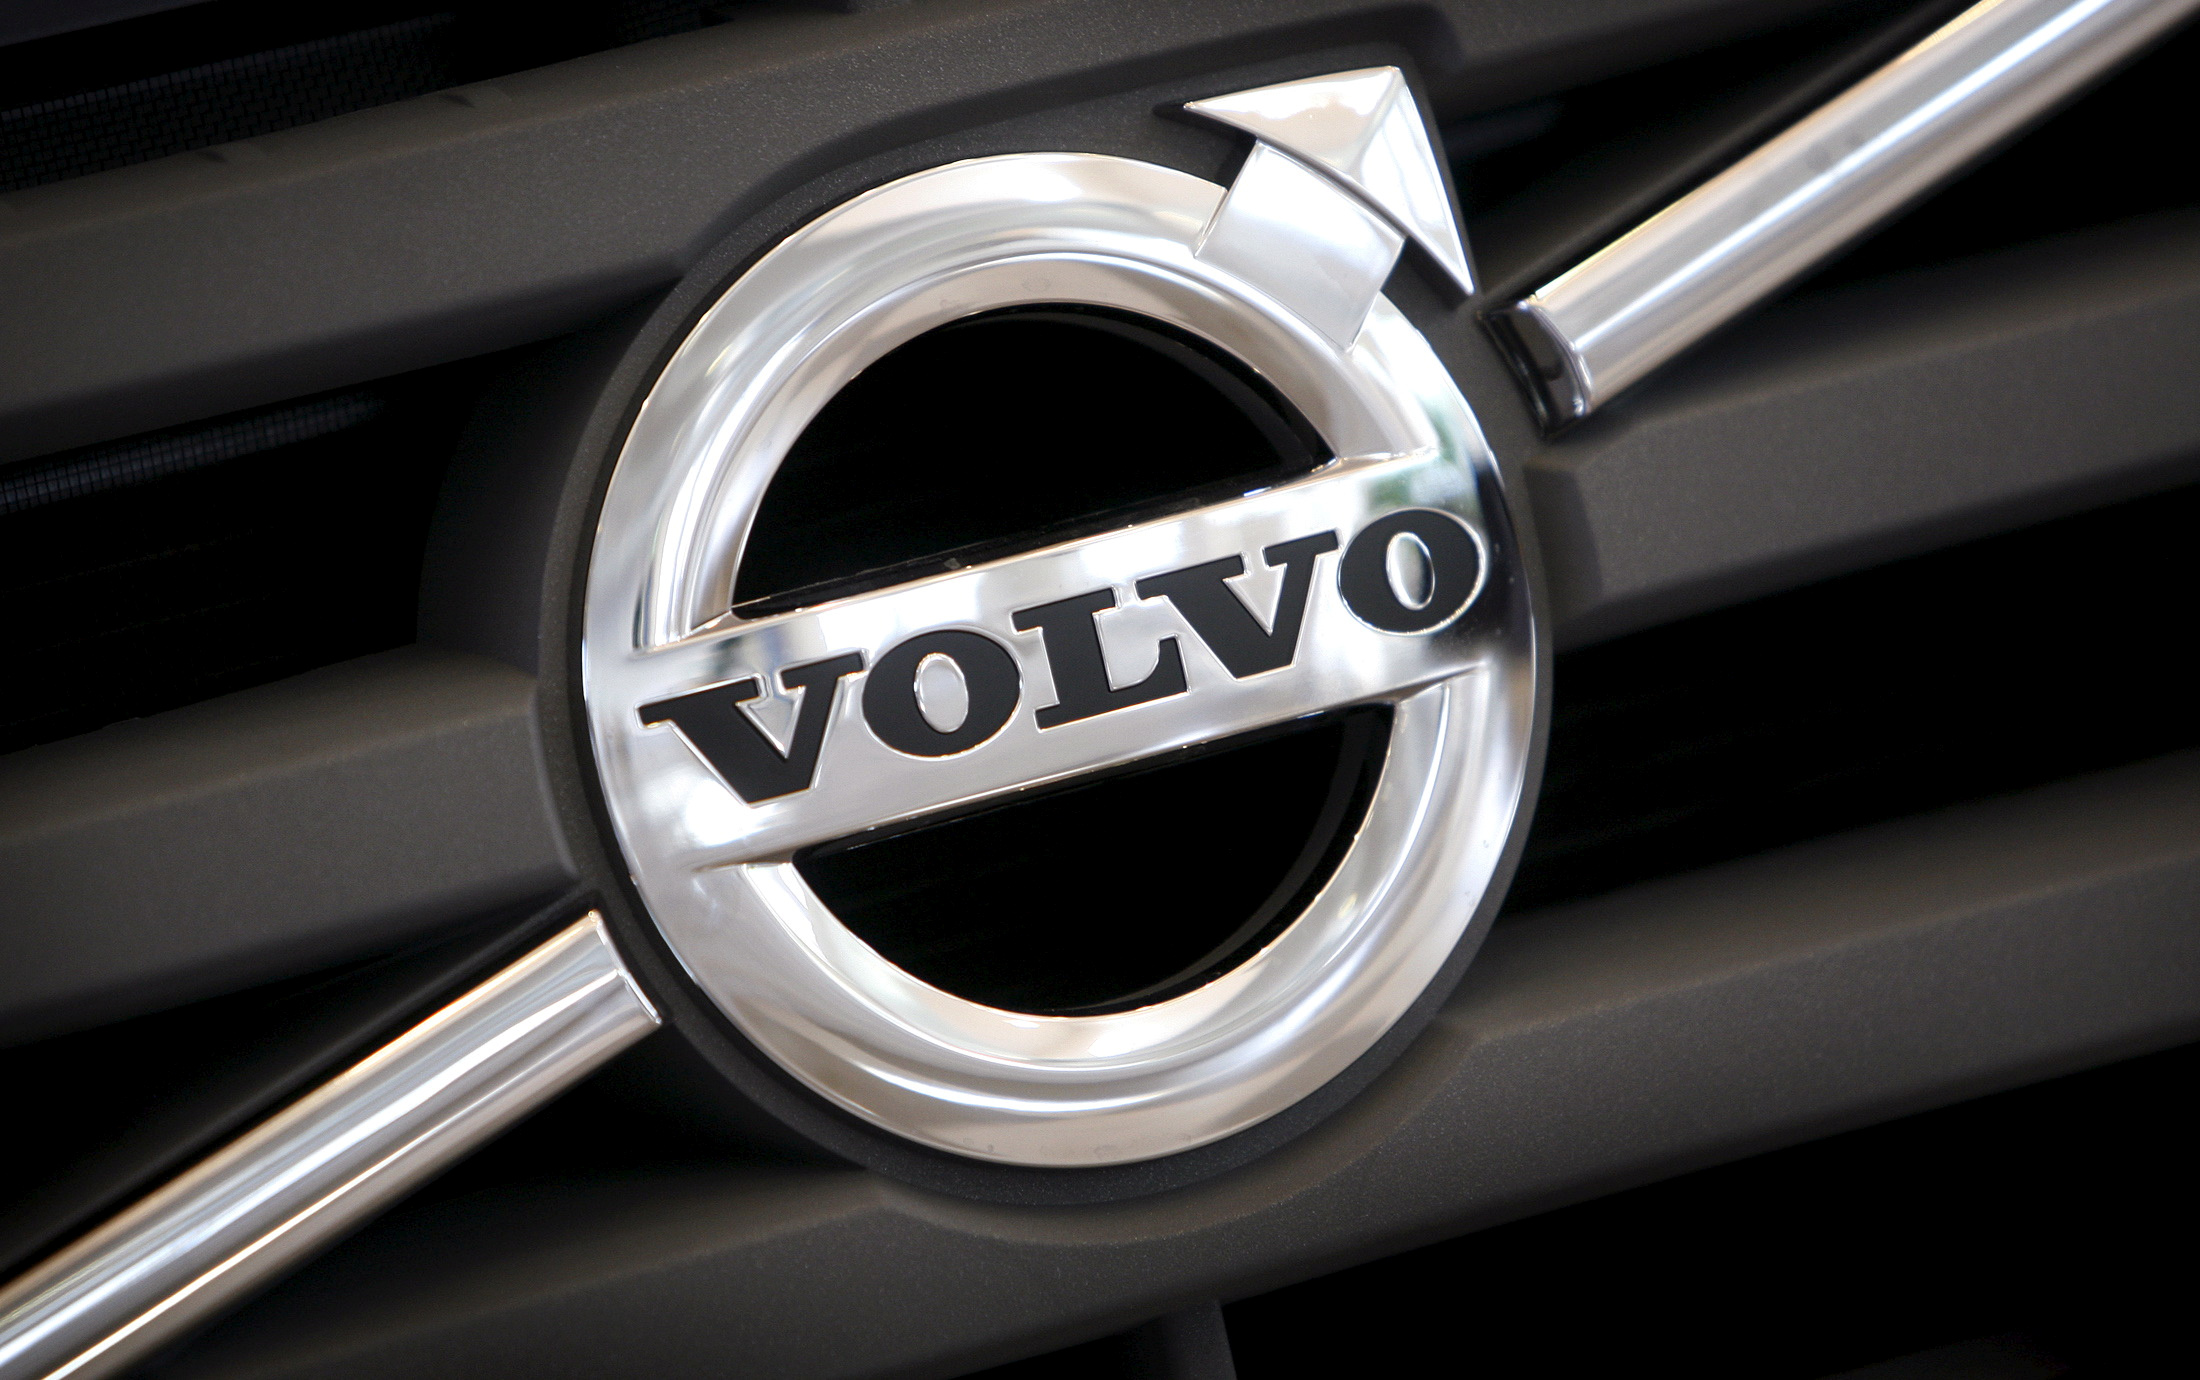 China's Geely takes $3.3 bln stake in Swedish truckmaker Volvo